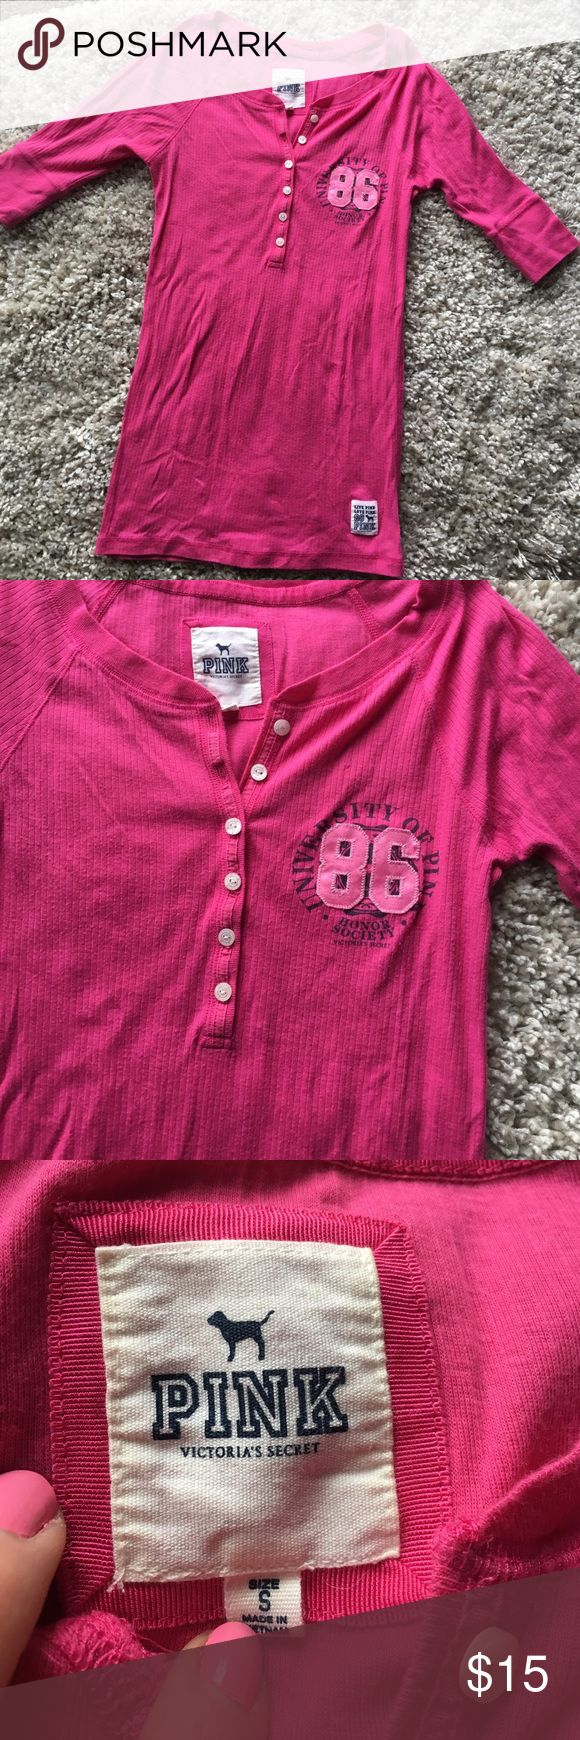 PINK short sleeve quarter button up t-shirt Victoria's Secret PINK short sleeve quarter button up t-shirt. Great pink color 👚 PINK Victoria's Secret Tops Tees - Short Sleeve